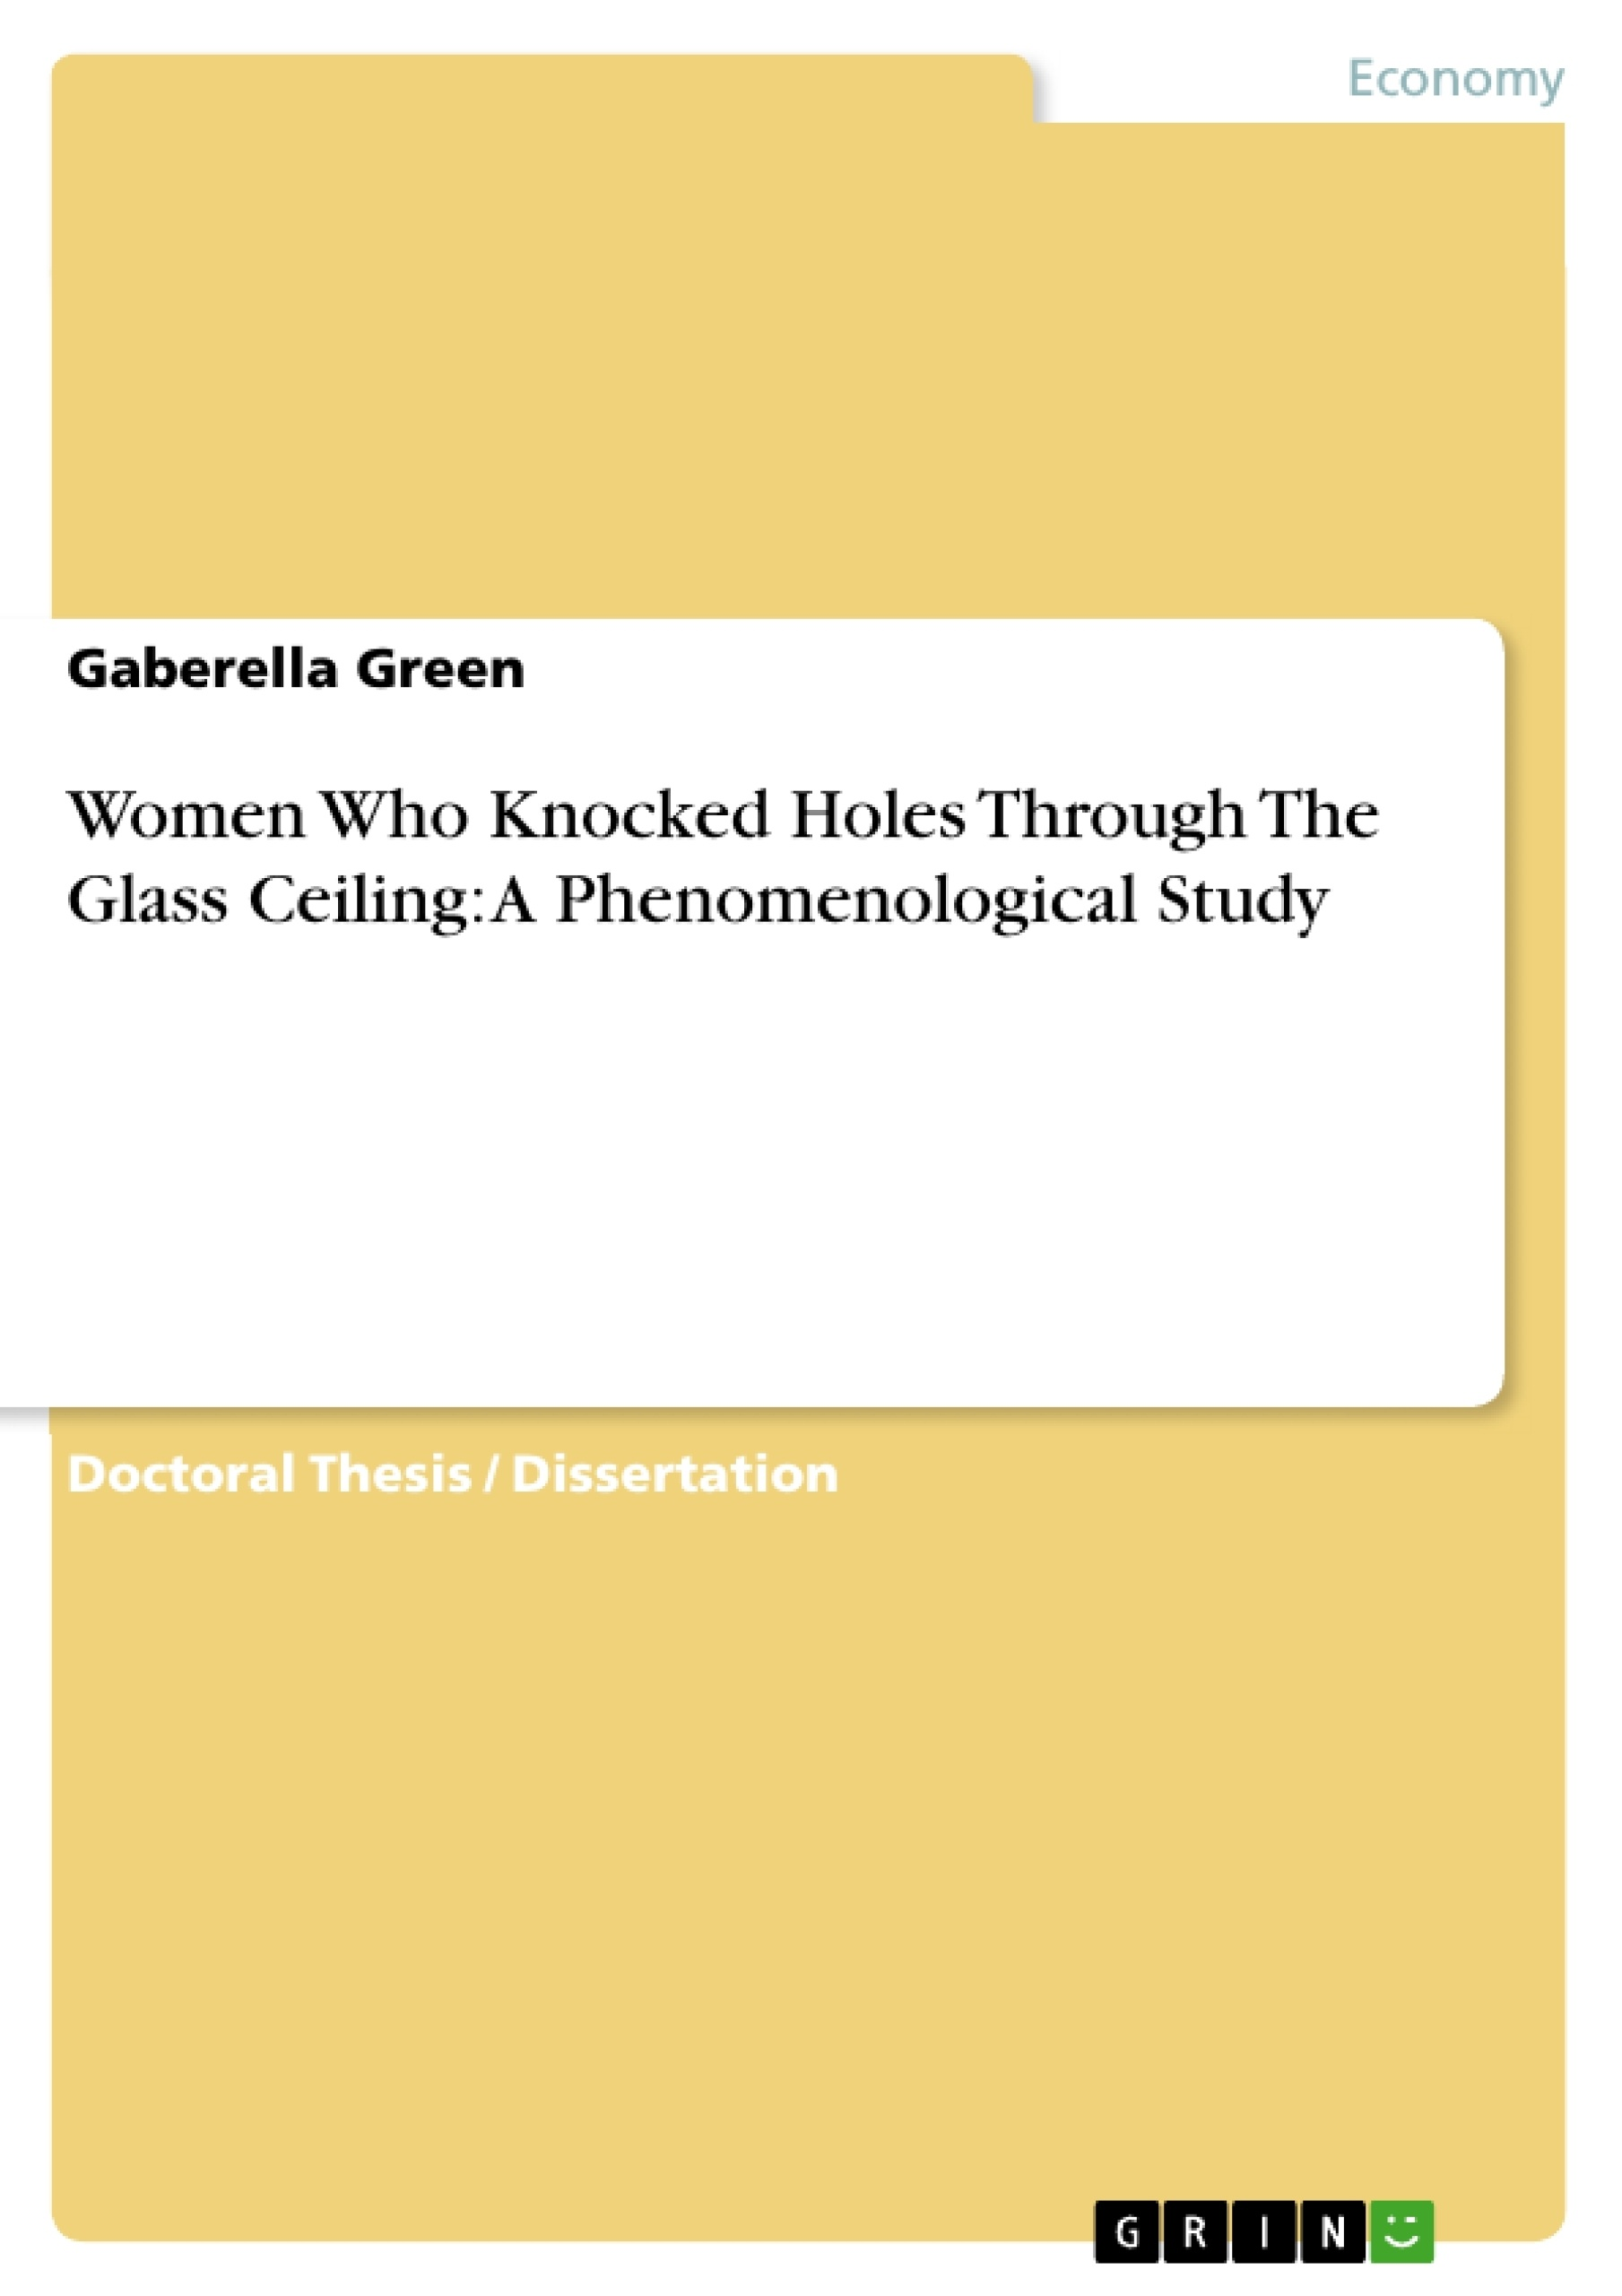 Title: Women Who Knocked Holes Through The Glass Ceiling: A Phenomenological Study